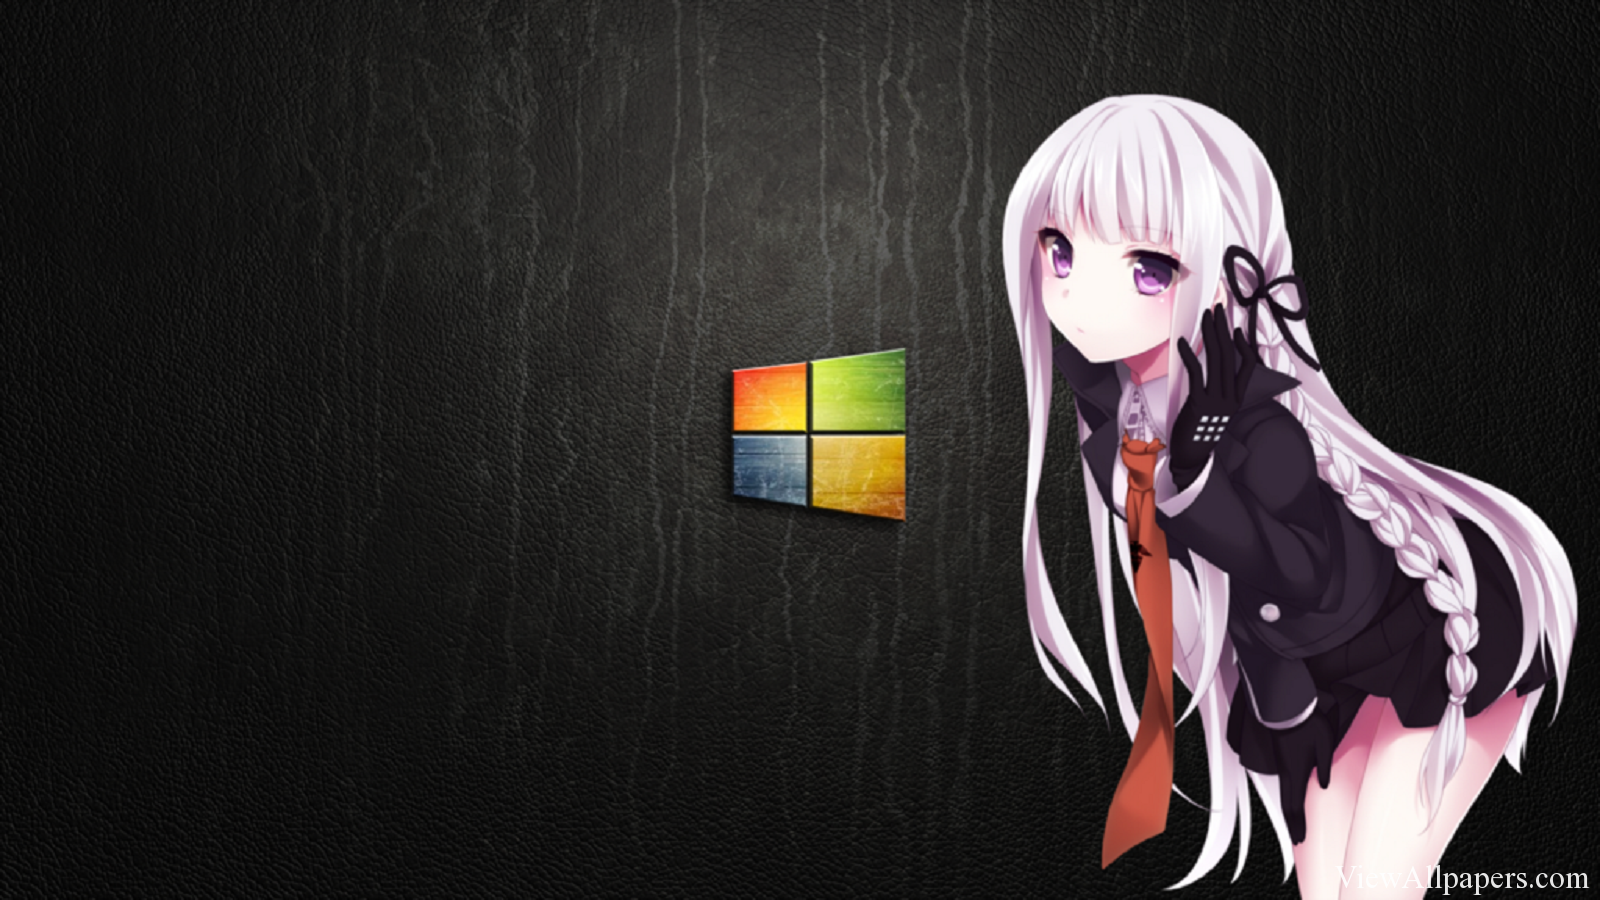 Windows Anime Wallpaper Wallpapersafari